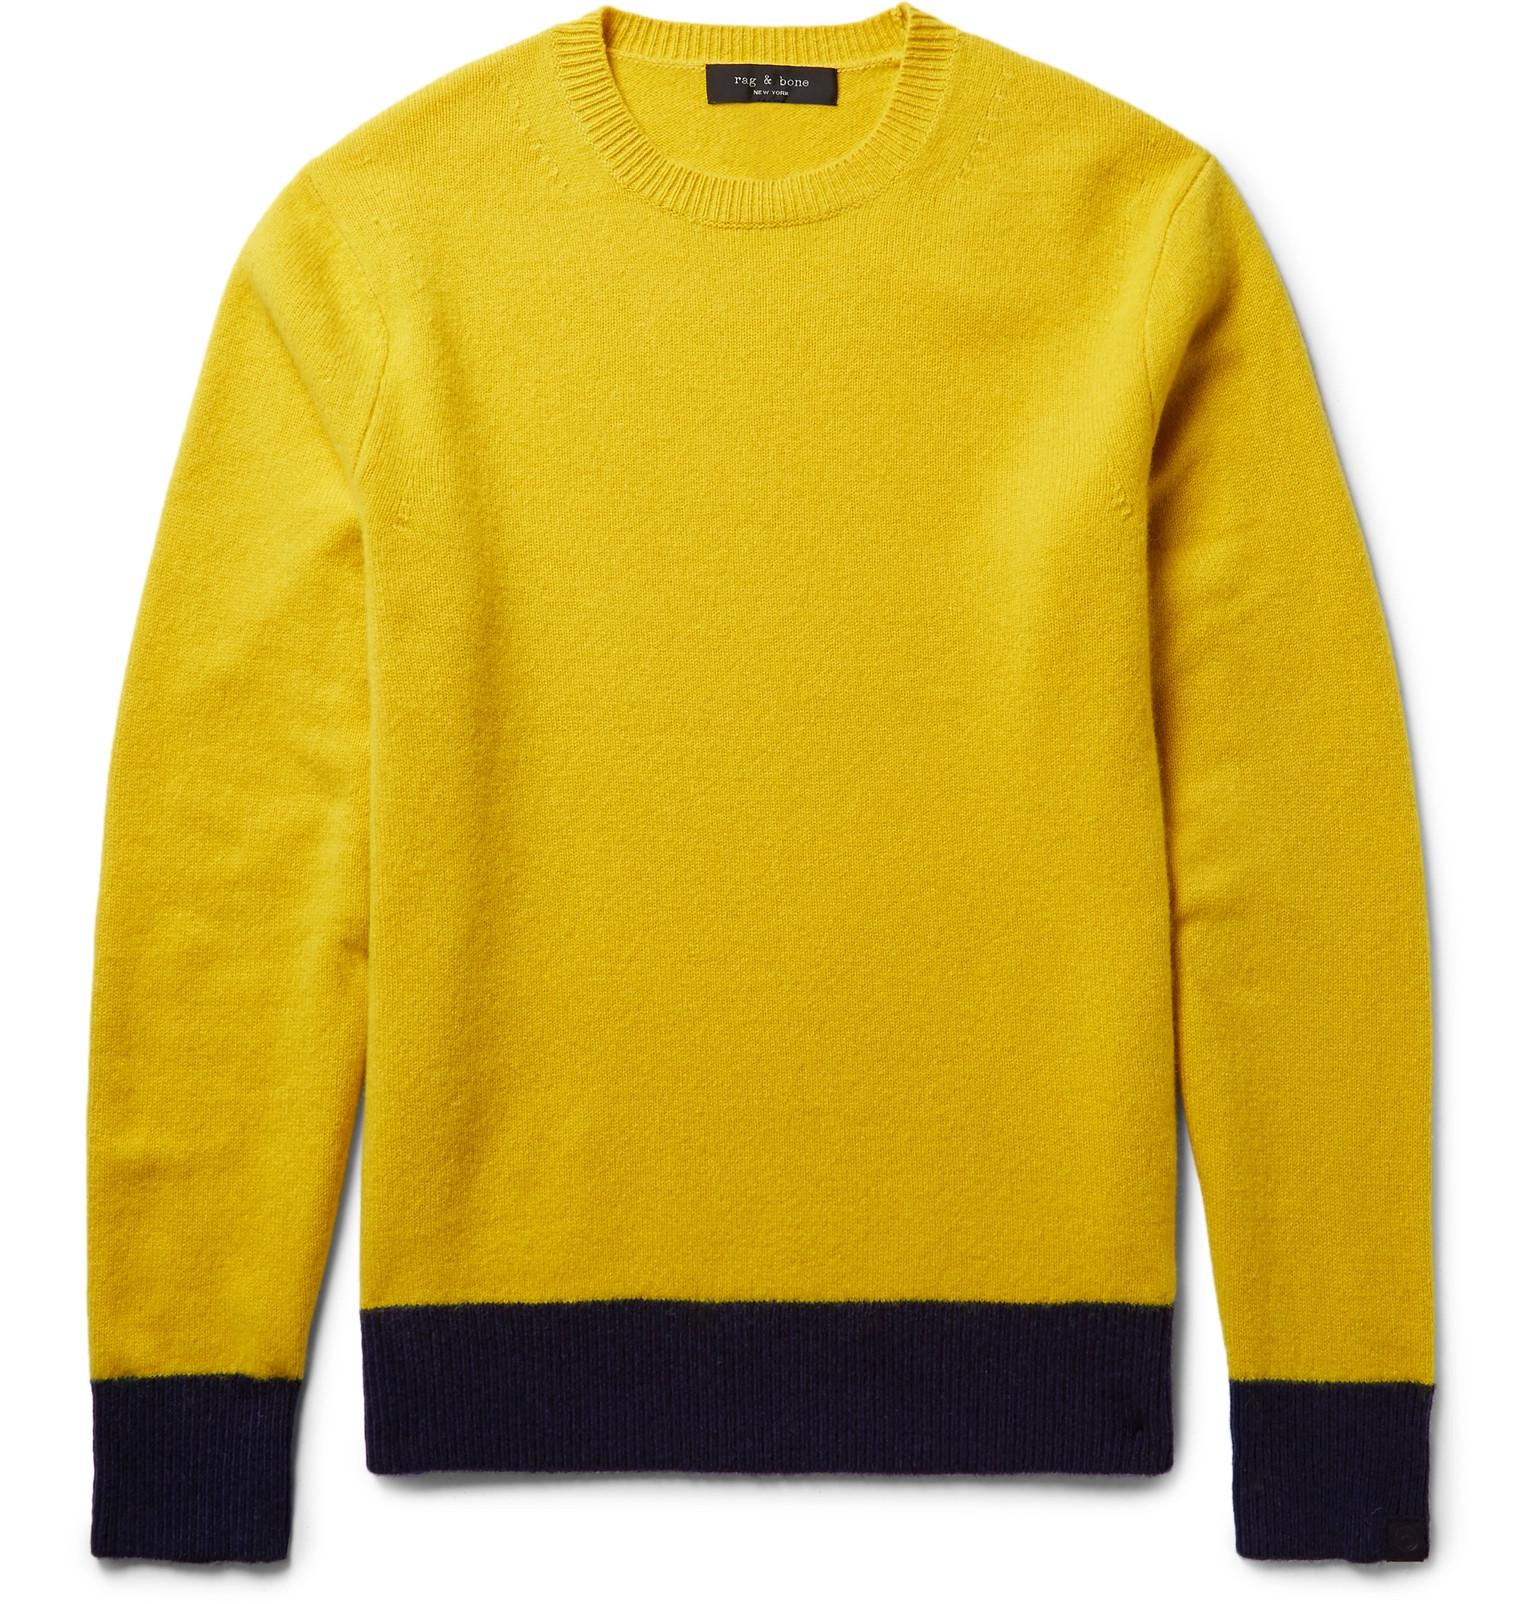 RAG&BONE Two-tone Shetland Wool-blend Sweater - Marigold zMY8j